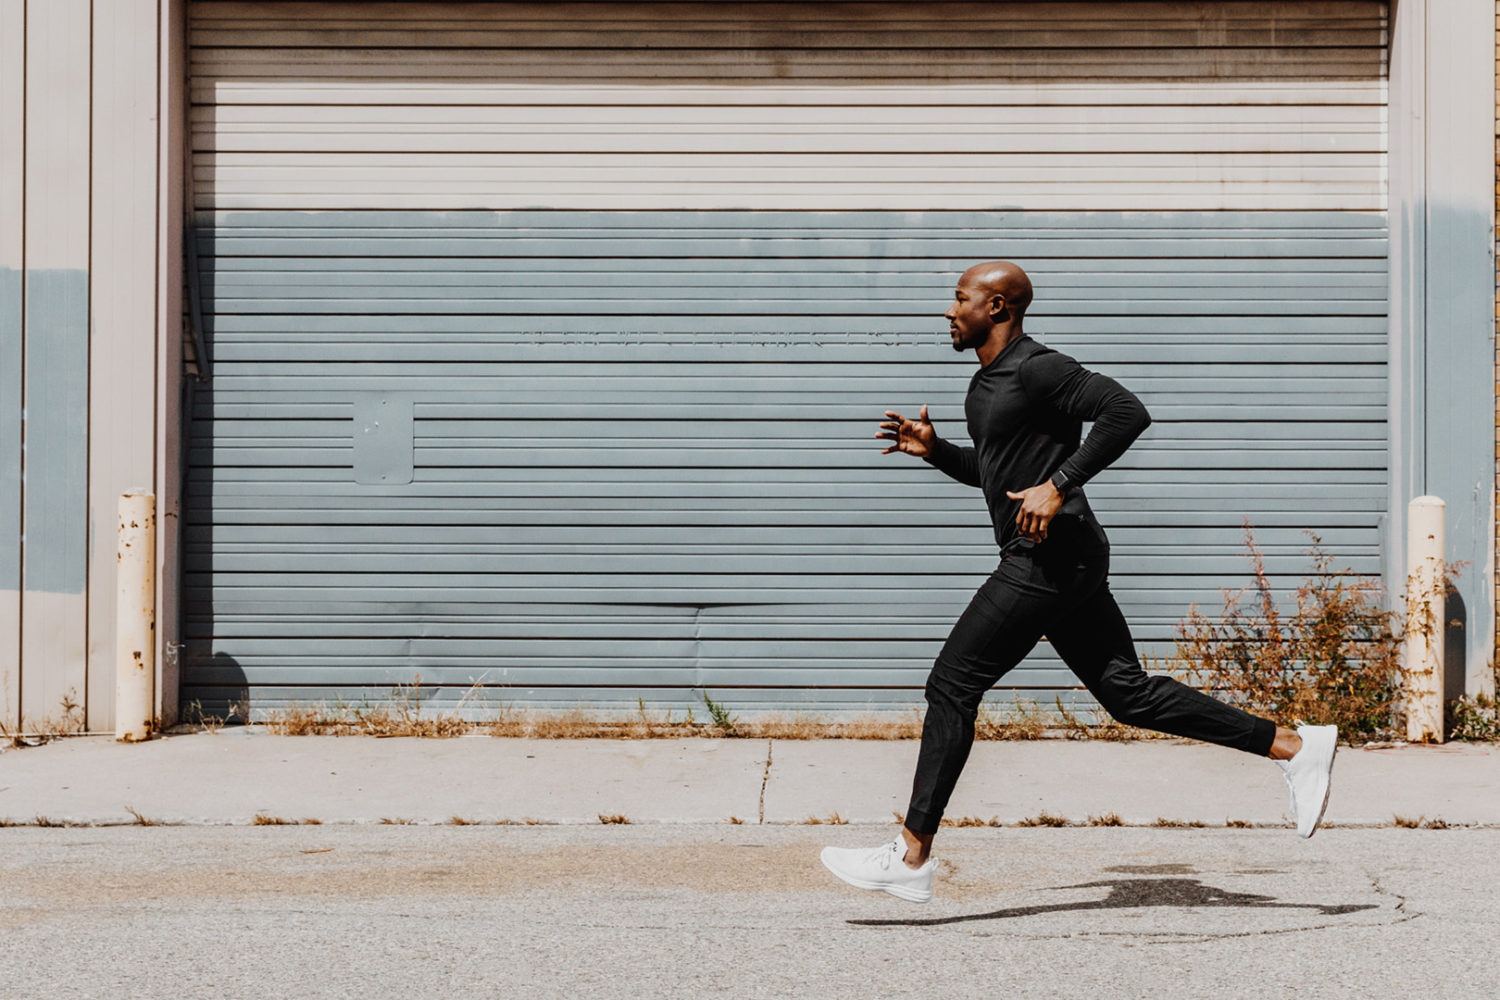 500px Contributor Quest: 'Jog It Out' with Hayden Stinebaugh